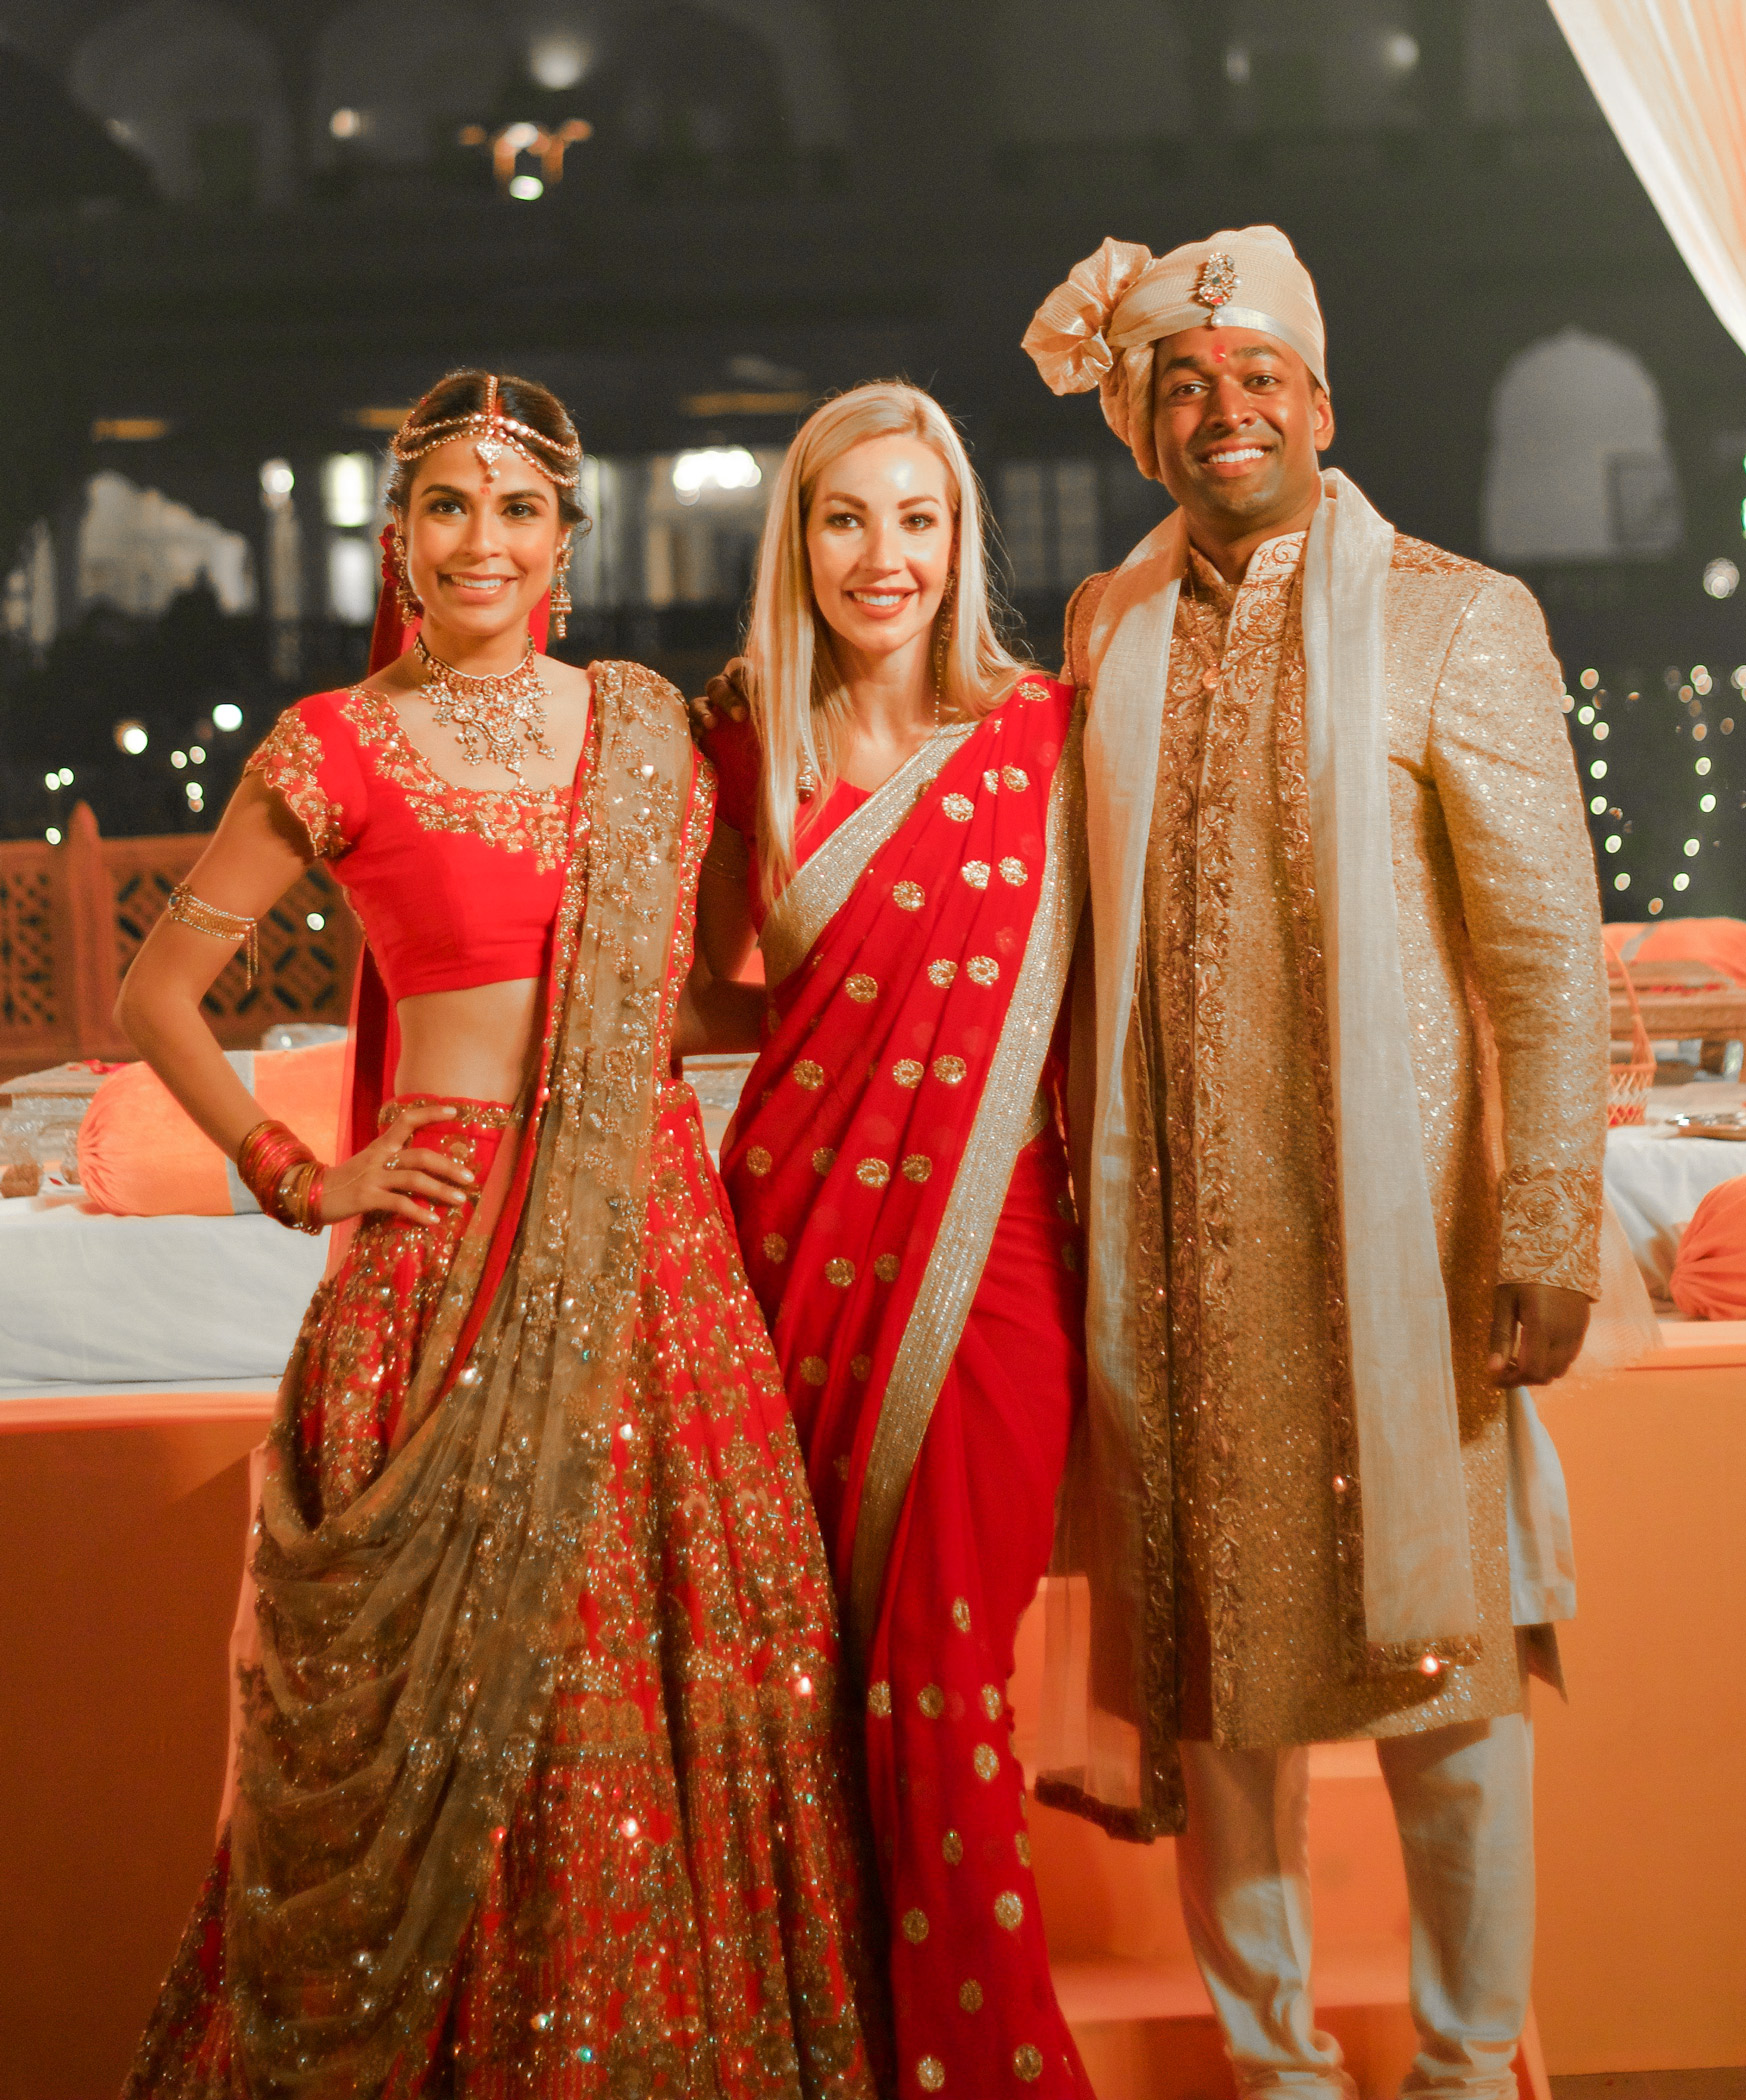 Can You Wear Red To A Wedding.The First Timers Guide To Attending An Indian Wedding